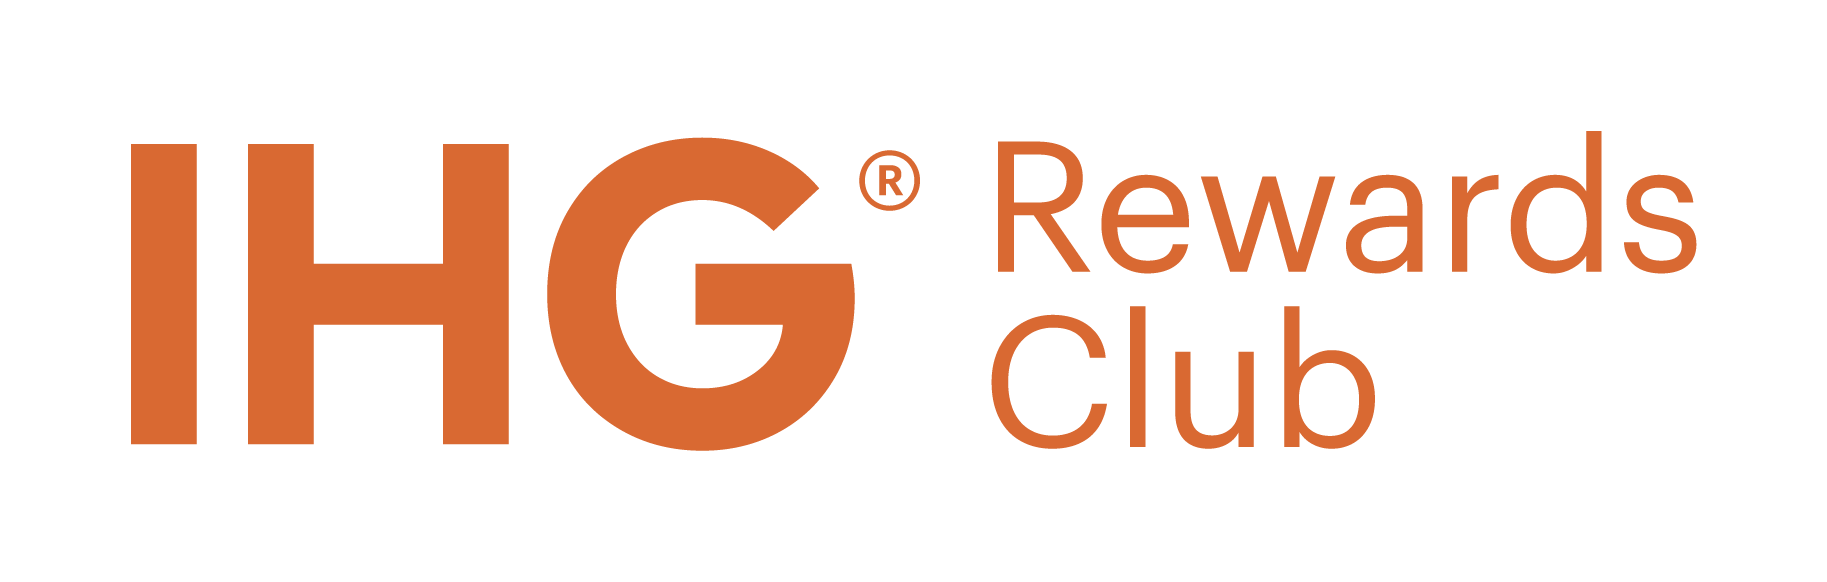 IHG Rewards Club current promotion